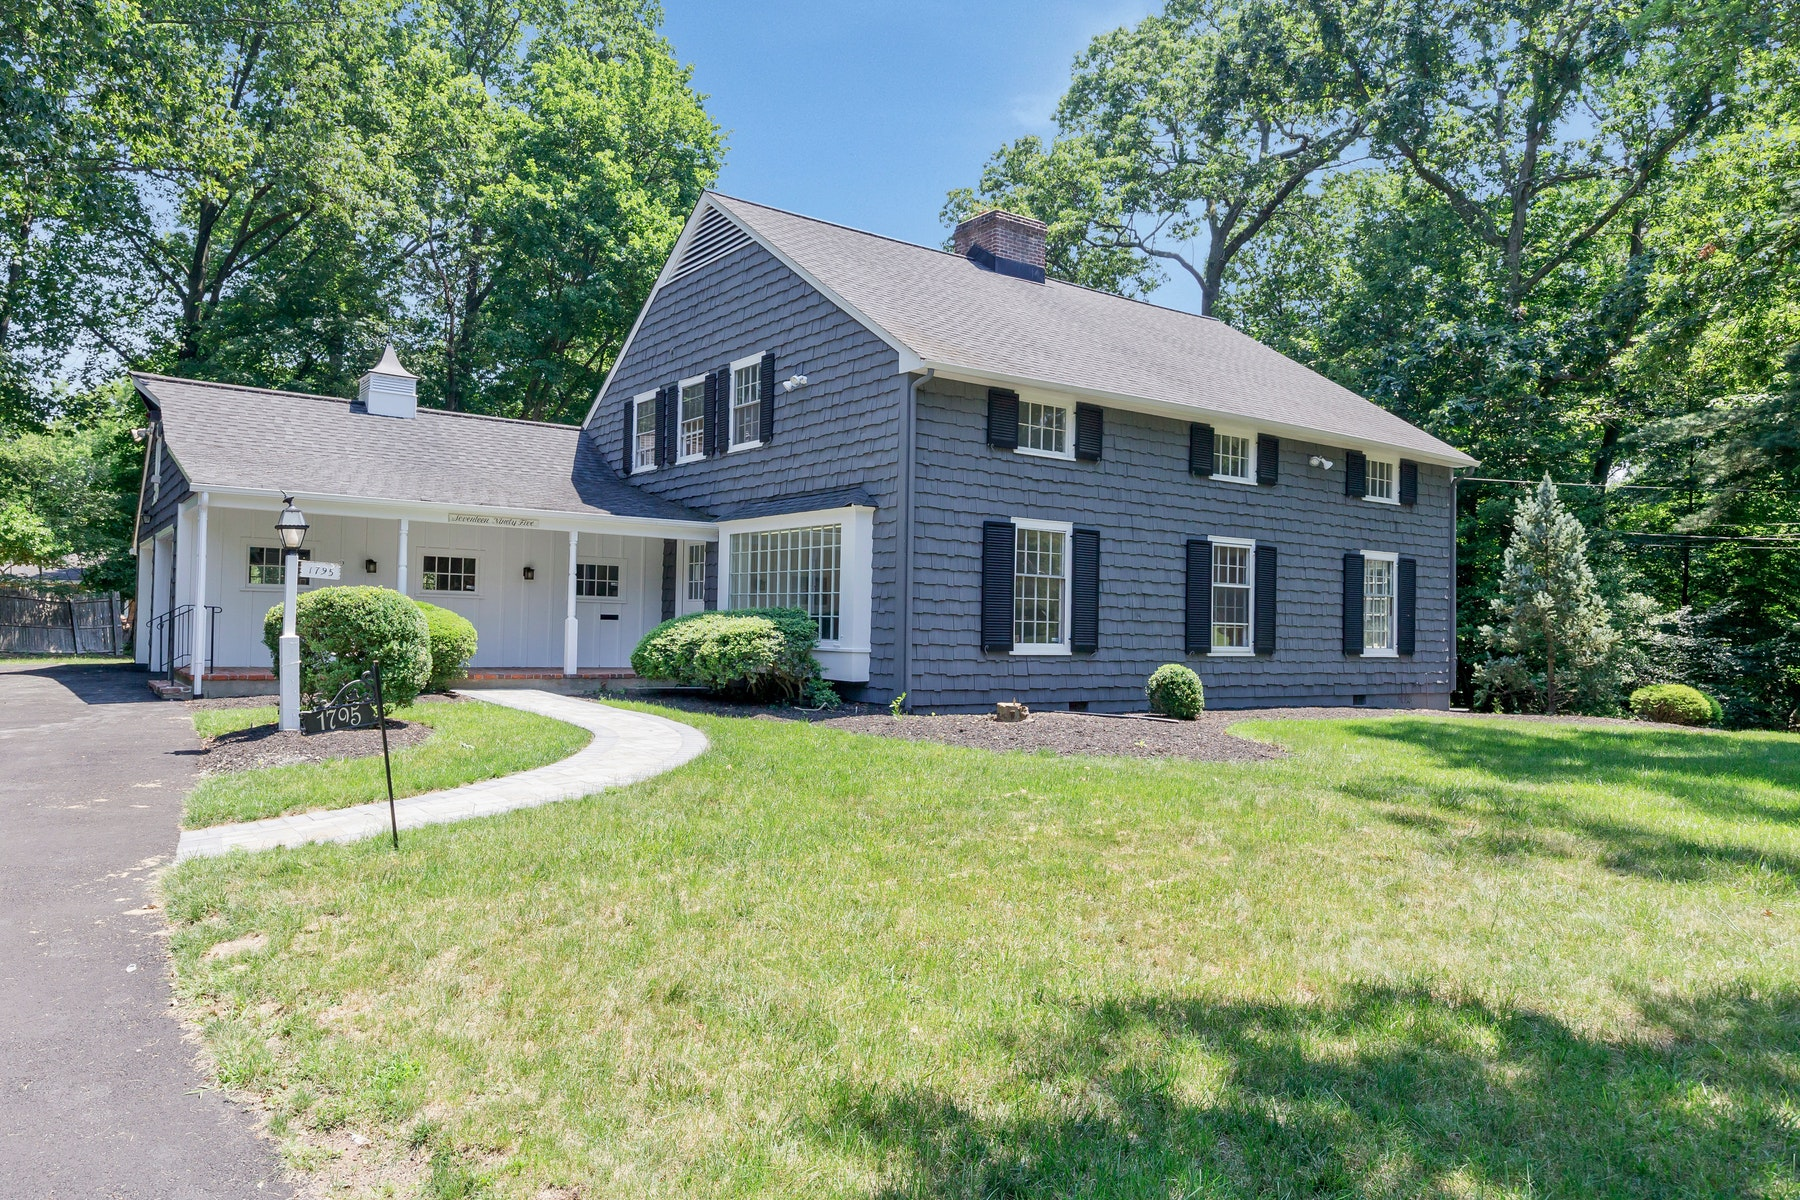 Single Family Home for Sale at Extraordinary Renovated Colonial 1795 Sleepy Hollow Lane Plainfield, New Jersey 07060 United States